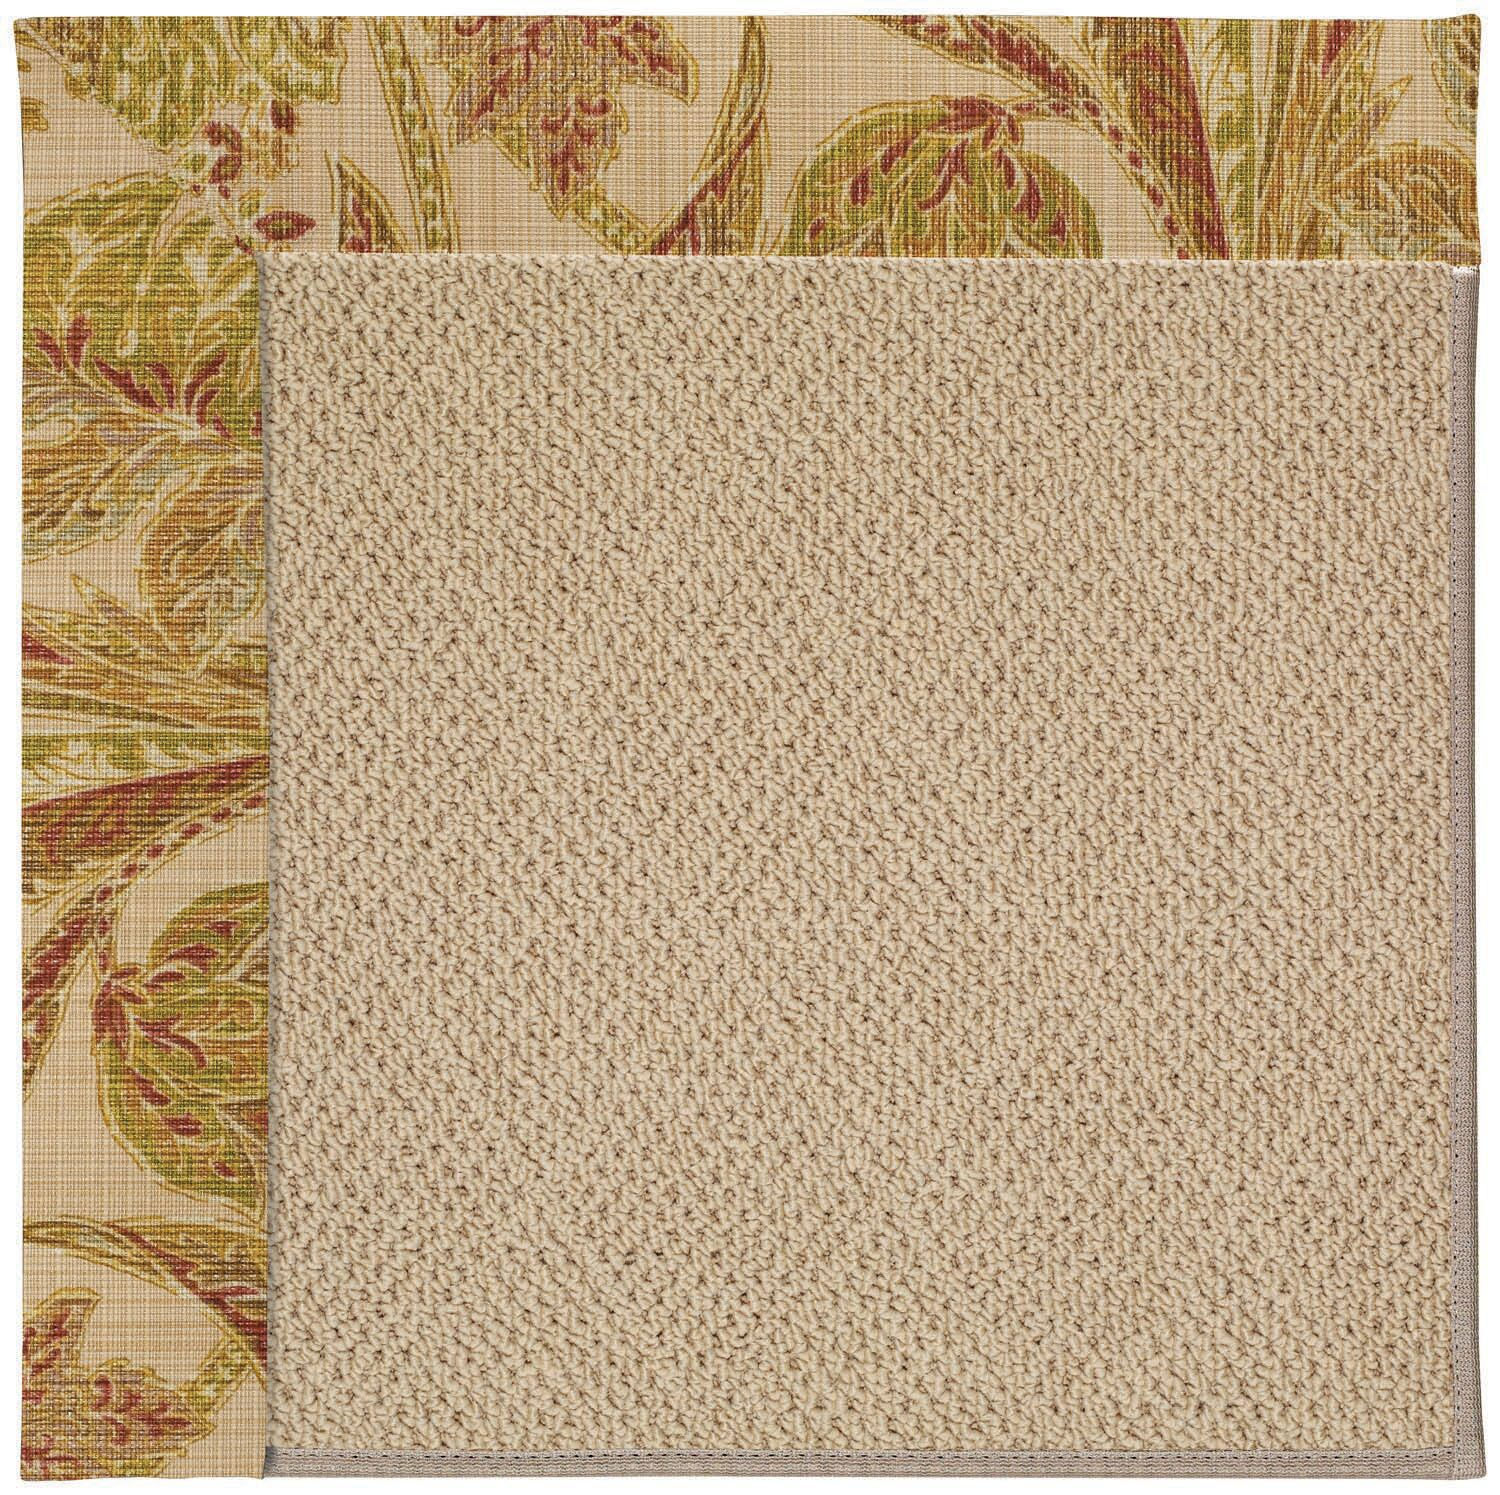 Lisle Machine Tufted Tan Indoor/Outdoor Area Rug Rug Size: Rectangle 12' x 15'